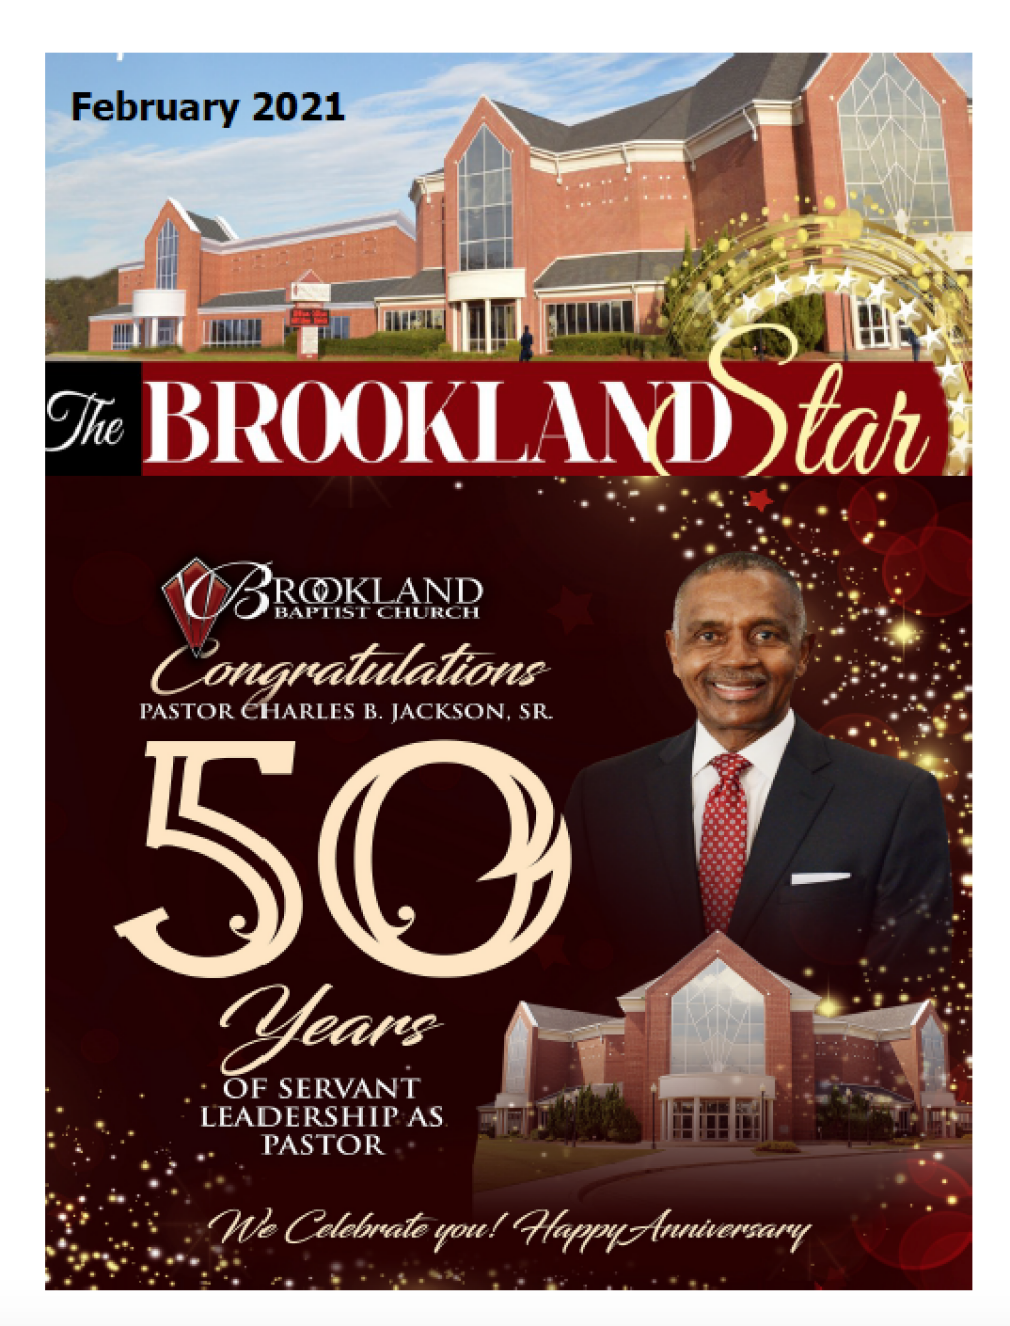 The Brookland Star February Edition 2021